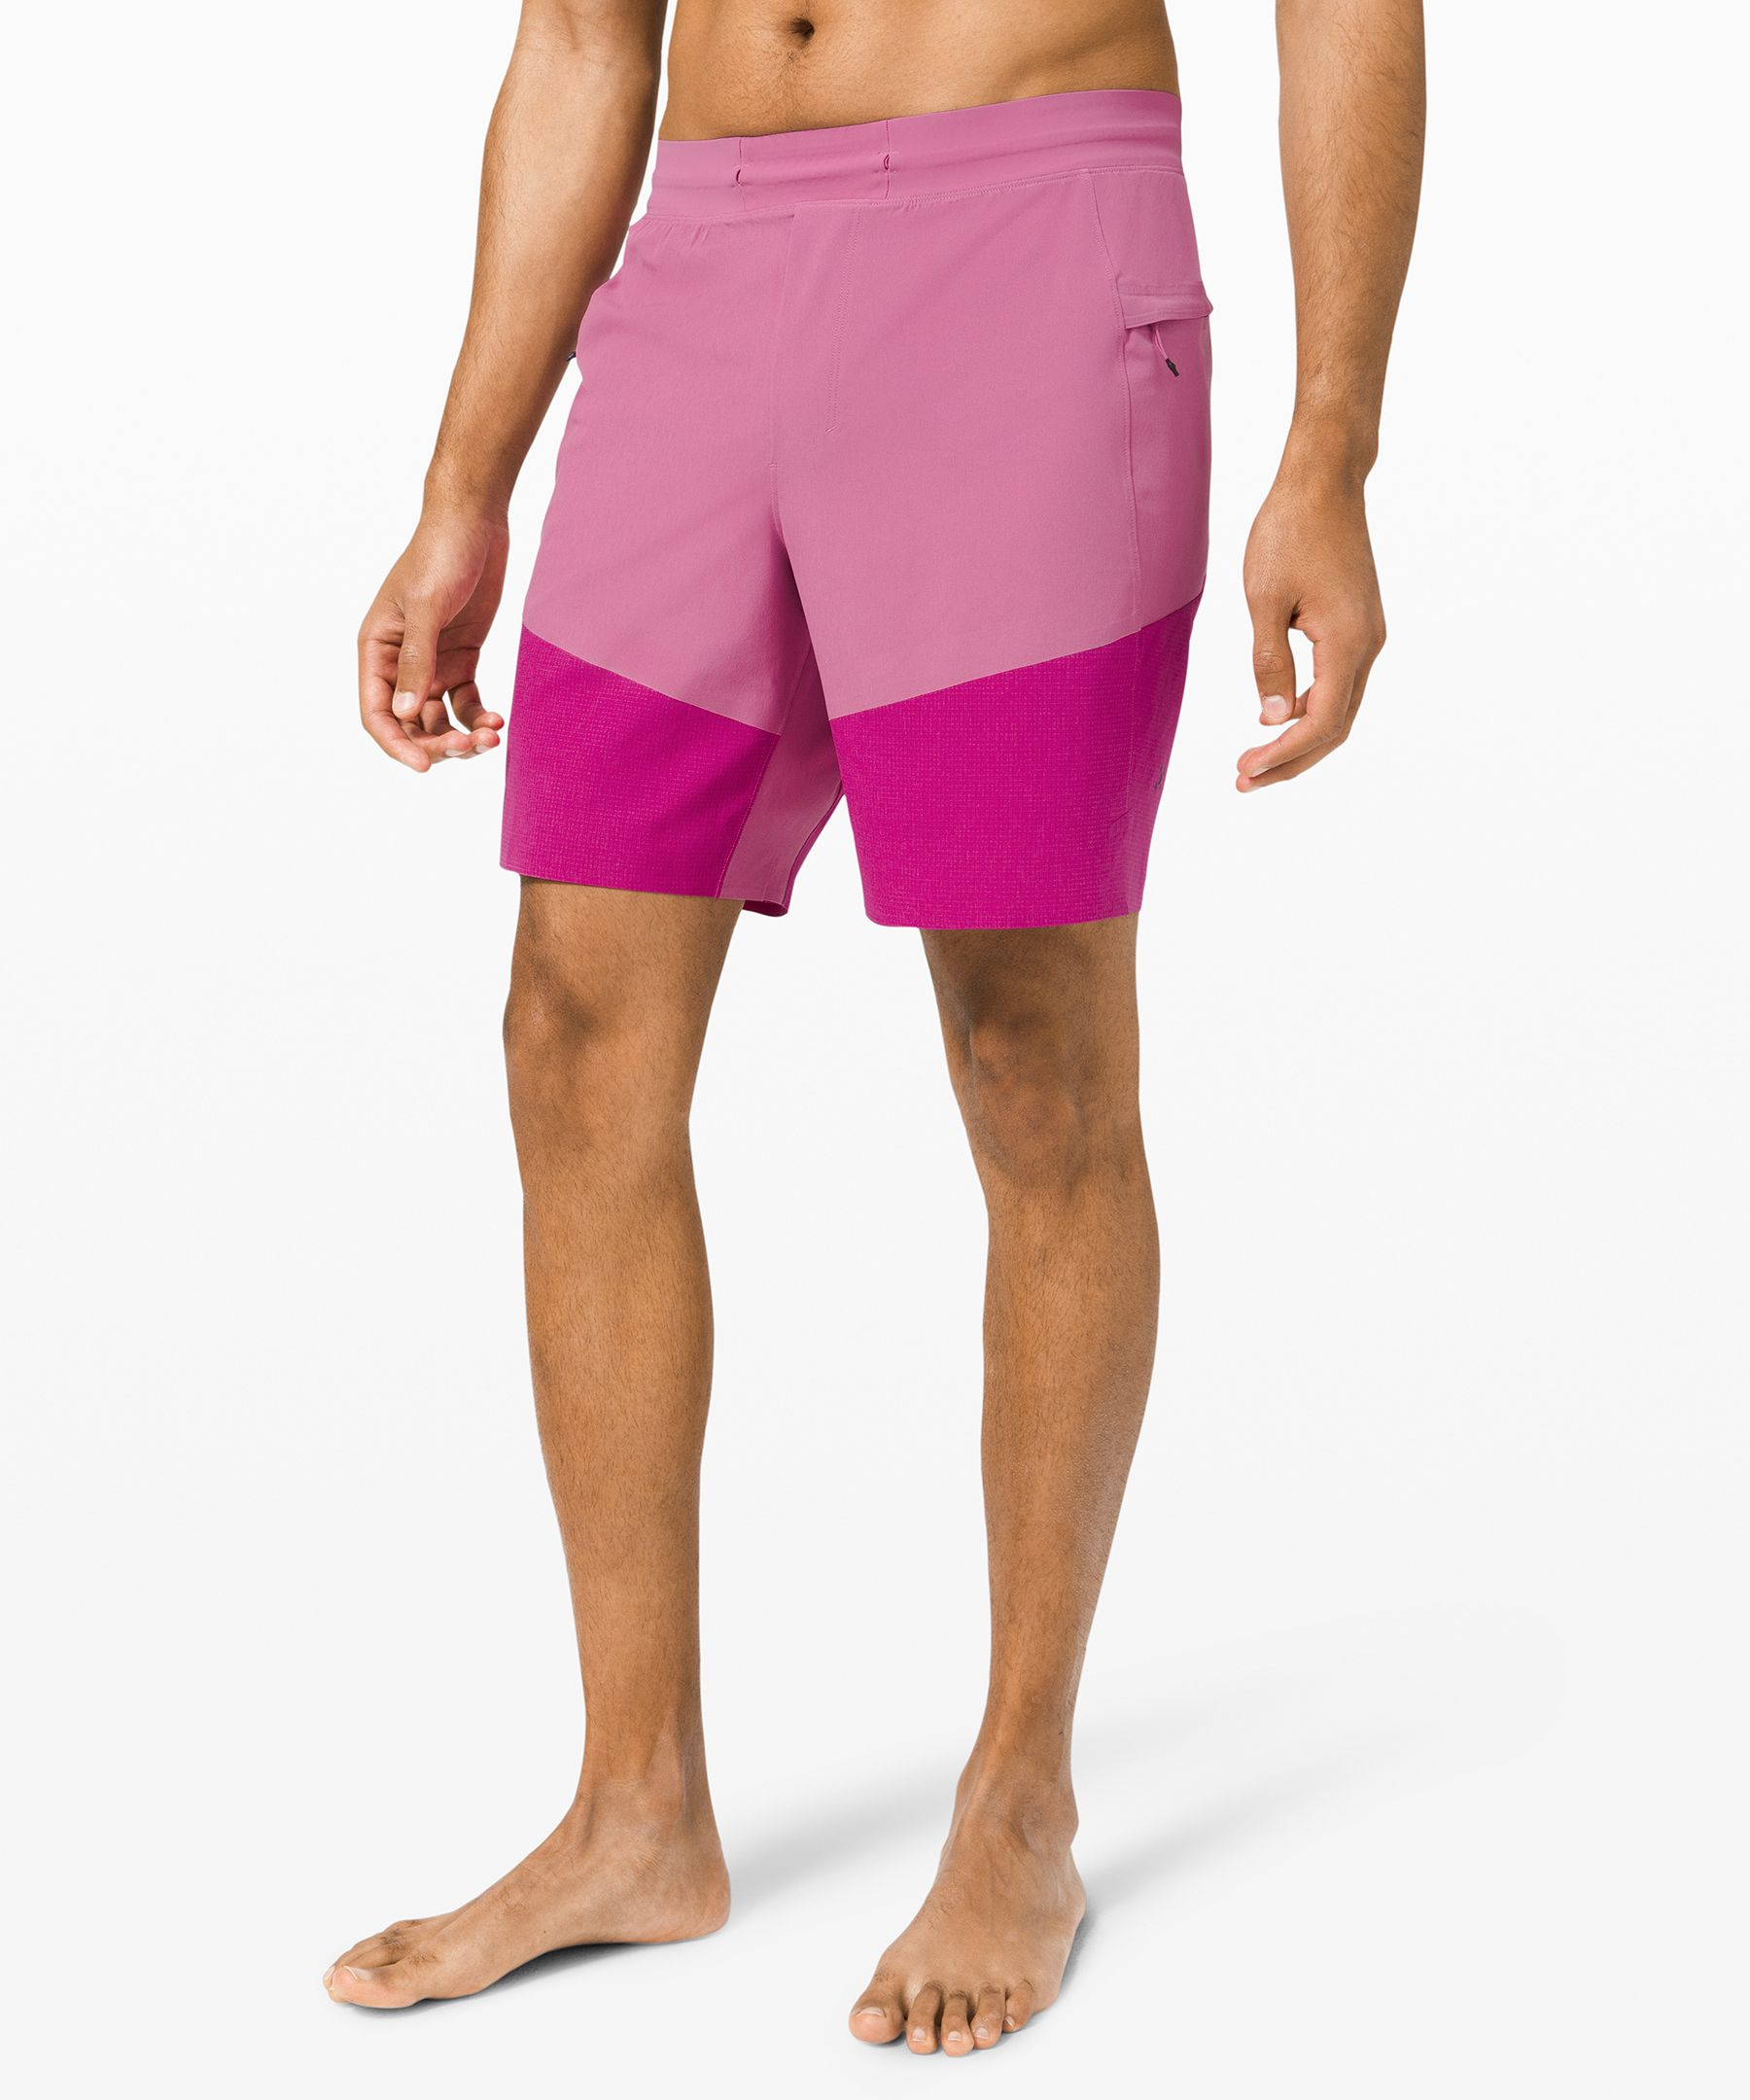 These lined shorts are a  vacation essential, with  serious storage options and a  flat, breathable waistband  that stays put when you\\\'re in  the waves.